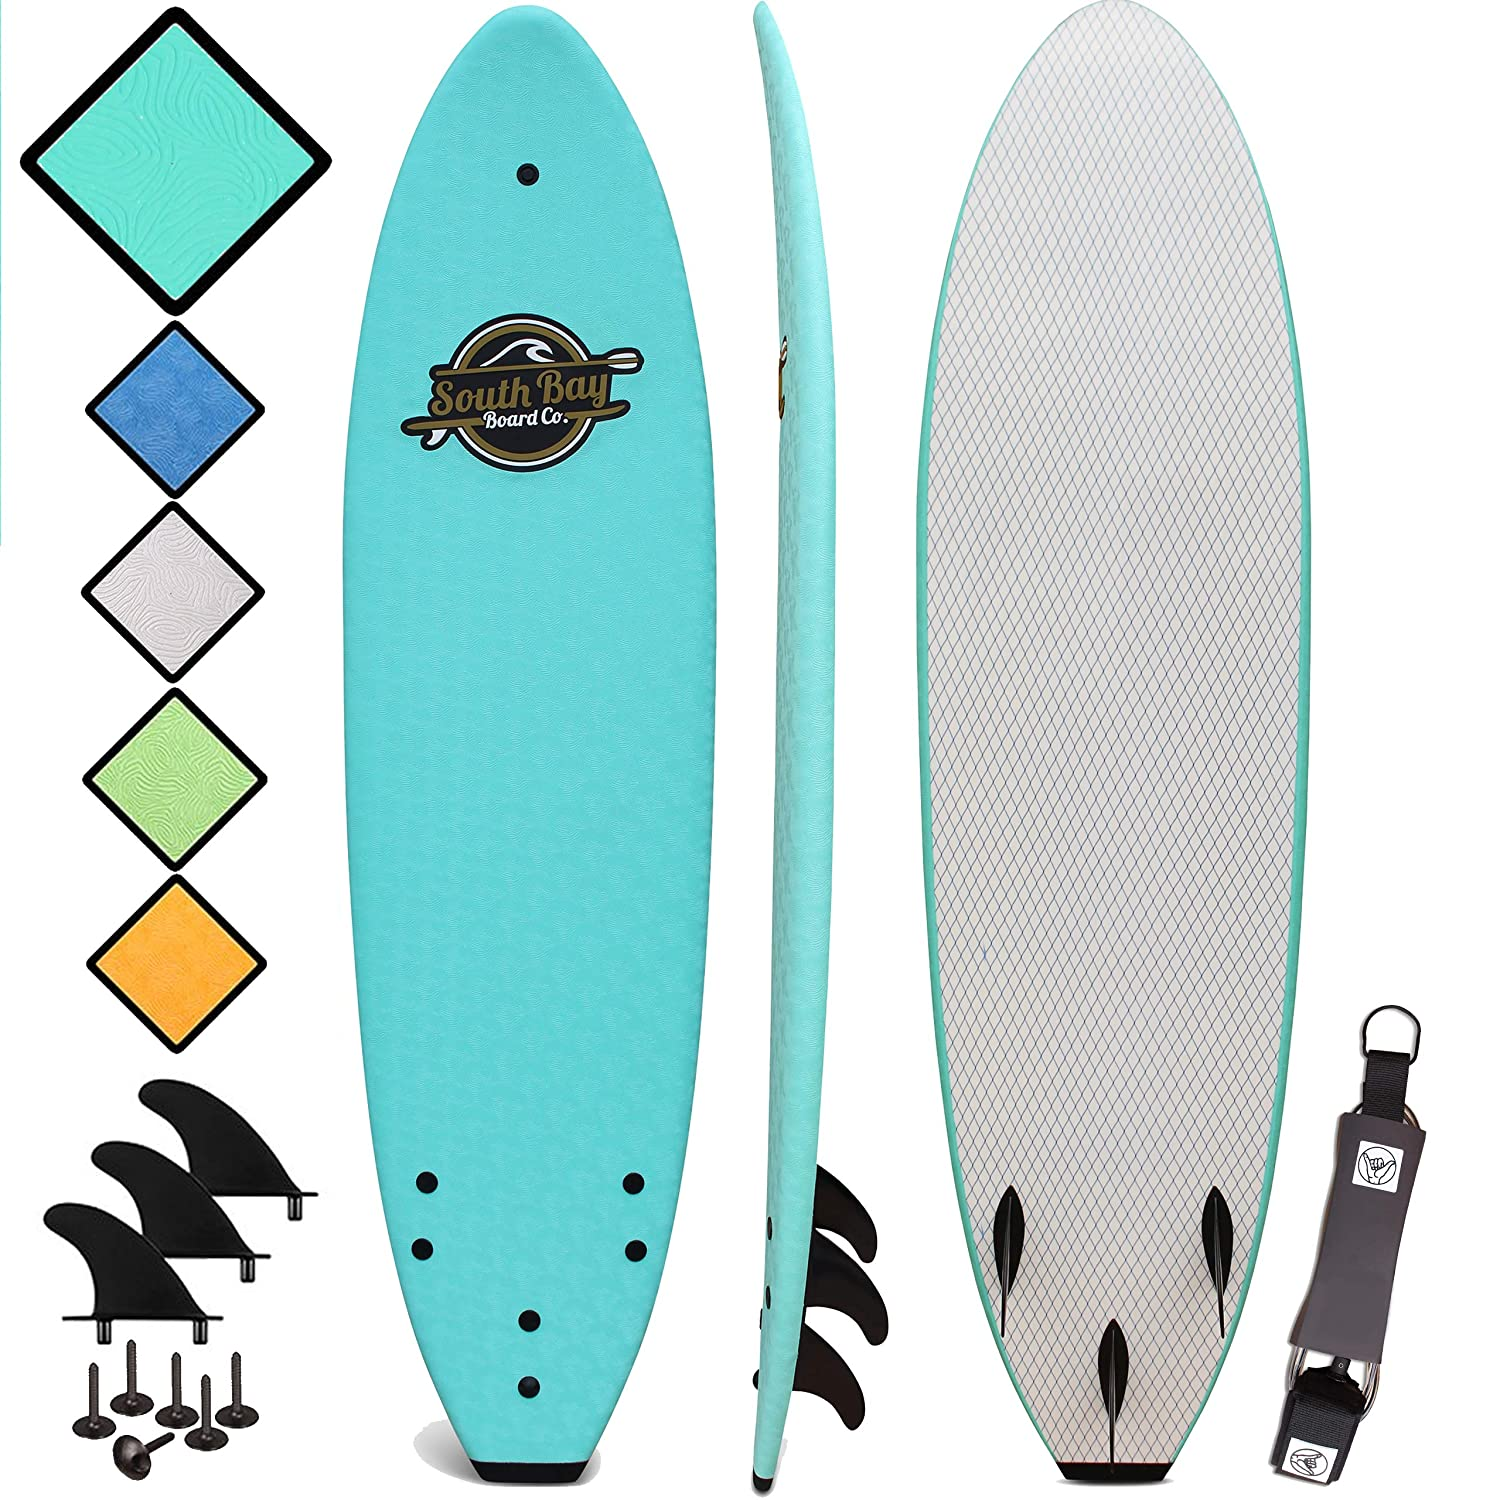 SBBC - 7' Soft Top Surfboard - || 7ft Ruccus || - Fun Performance Foam  Surfboards | Great Surf Boards for All Surfing Skill Levels